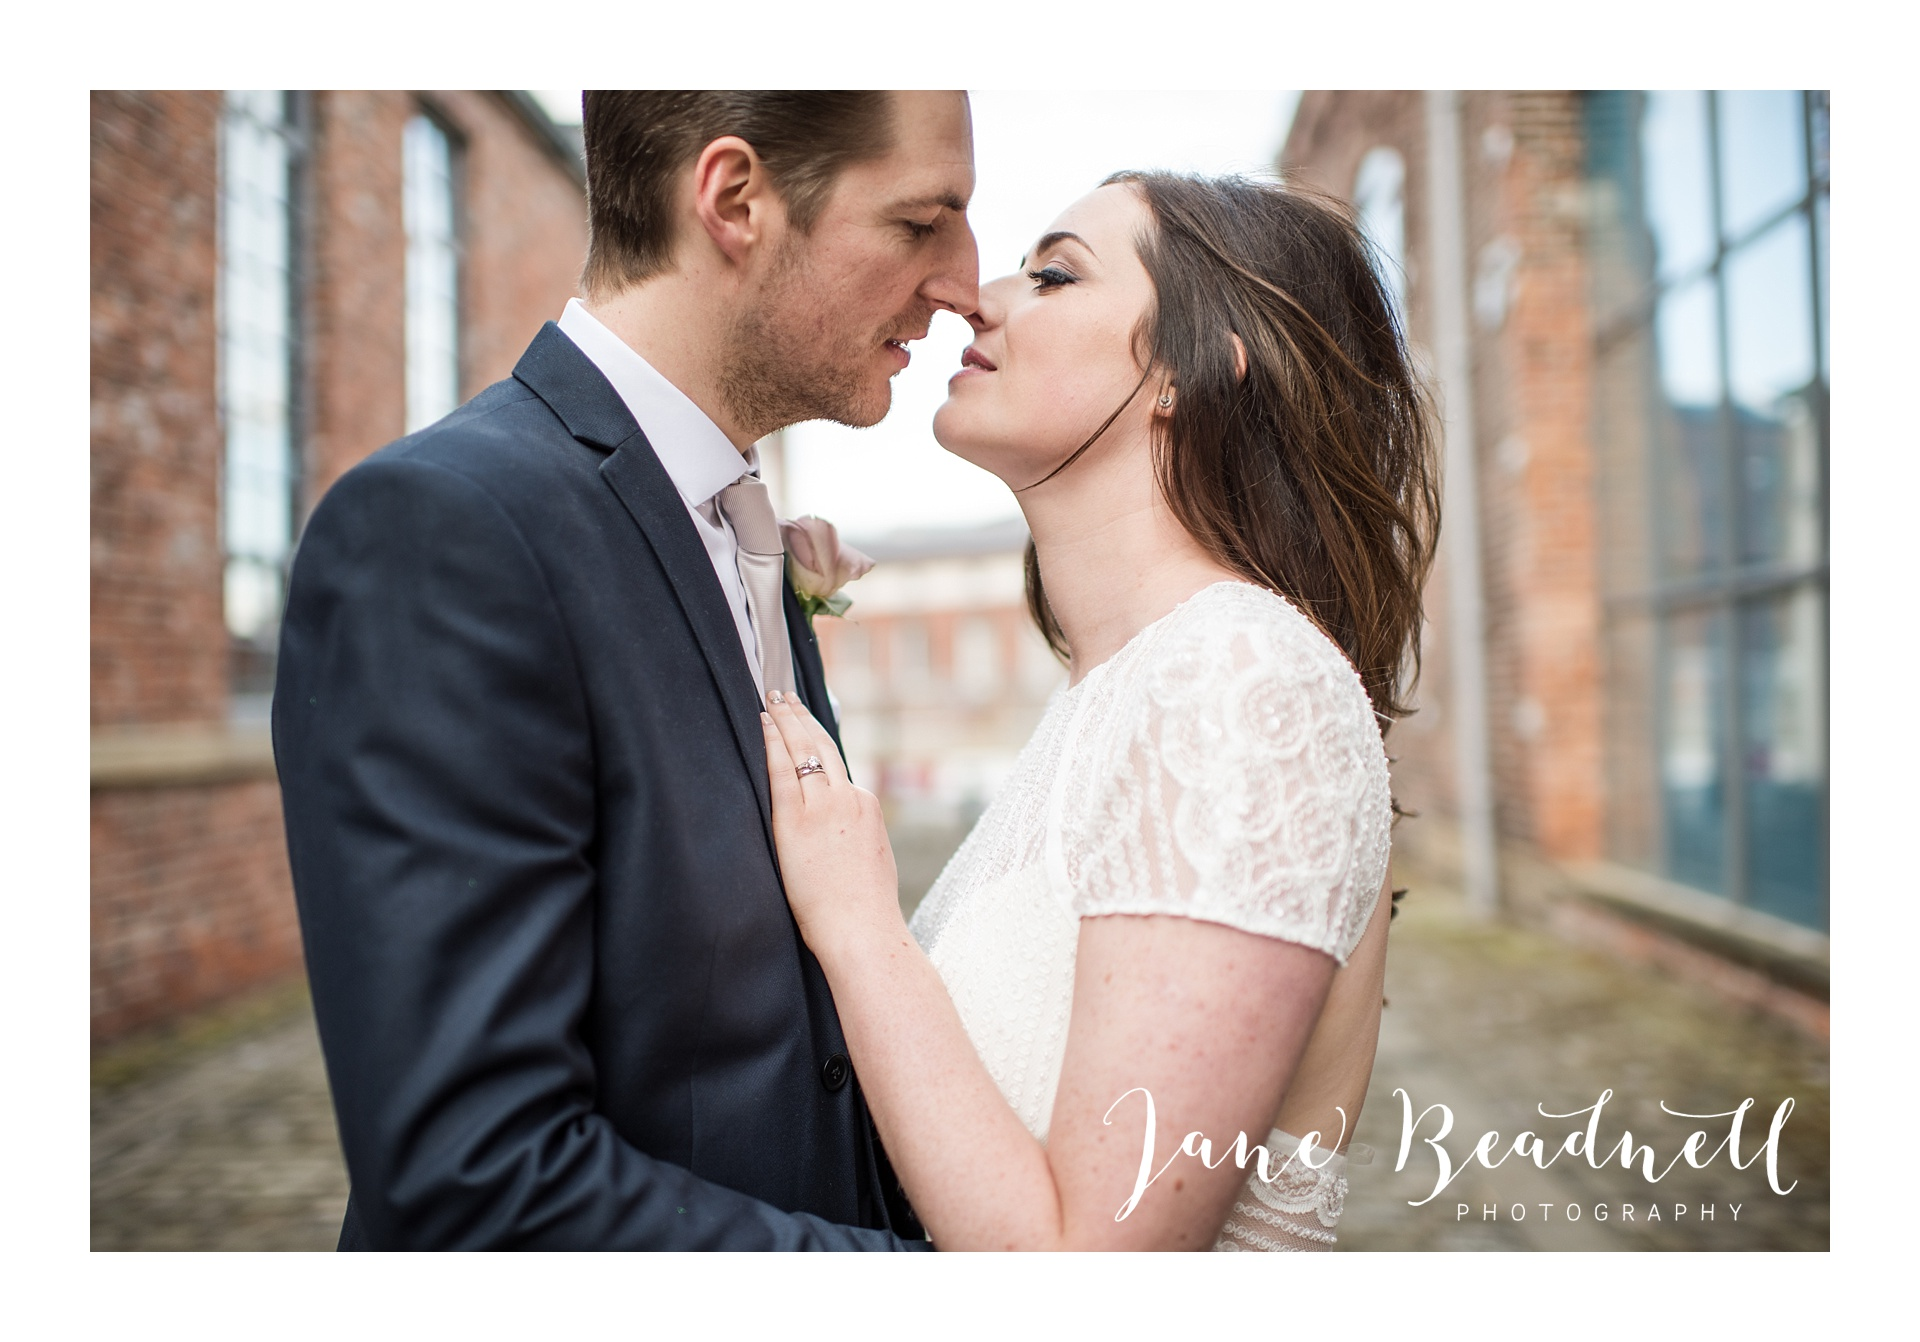 Wedding photography Cross Keys Leeds Wedding Jane Beadnell Photography_0102